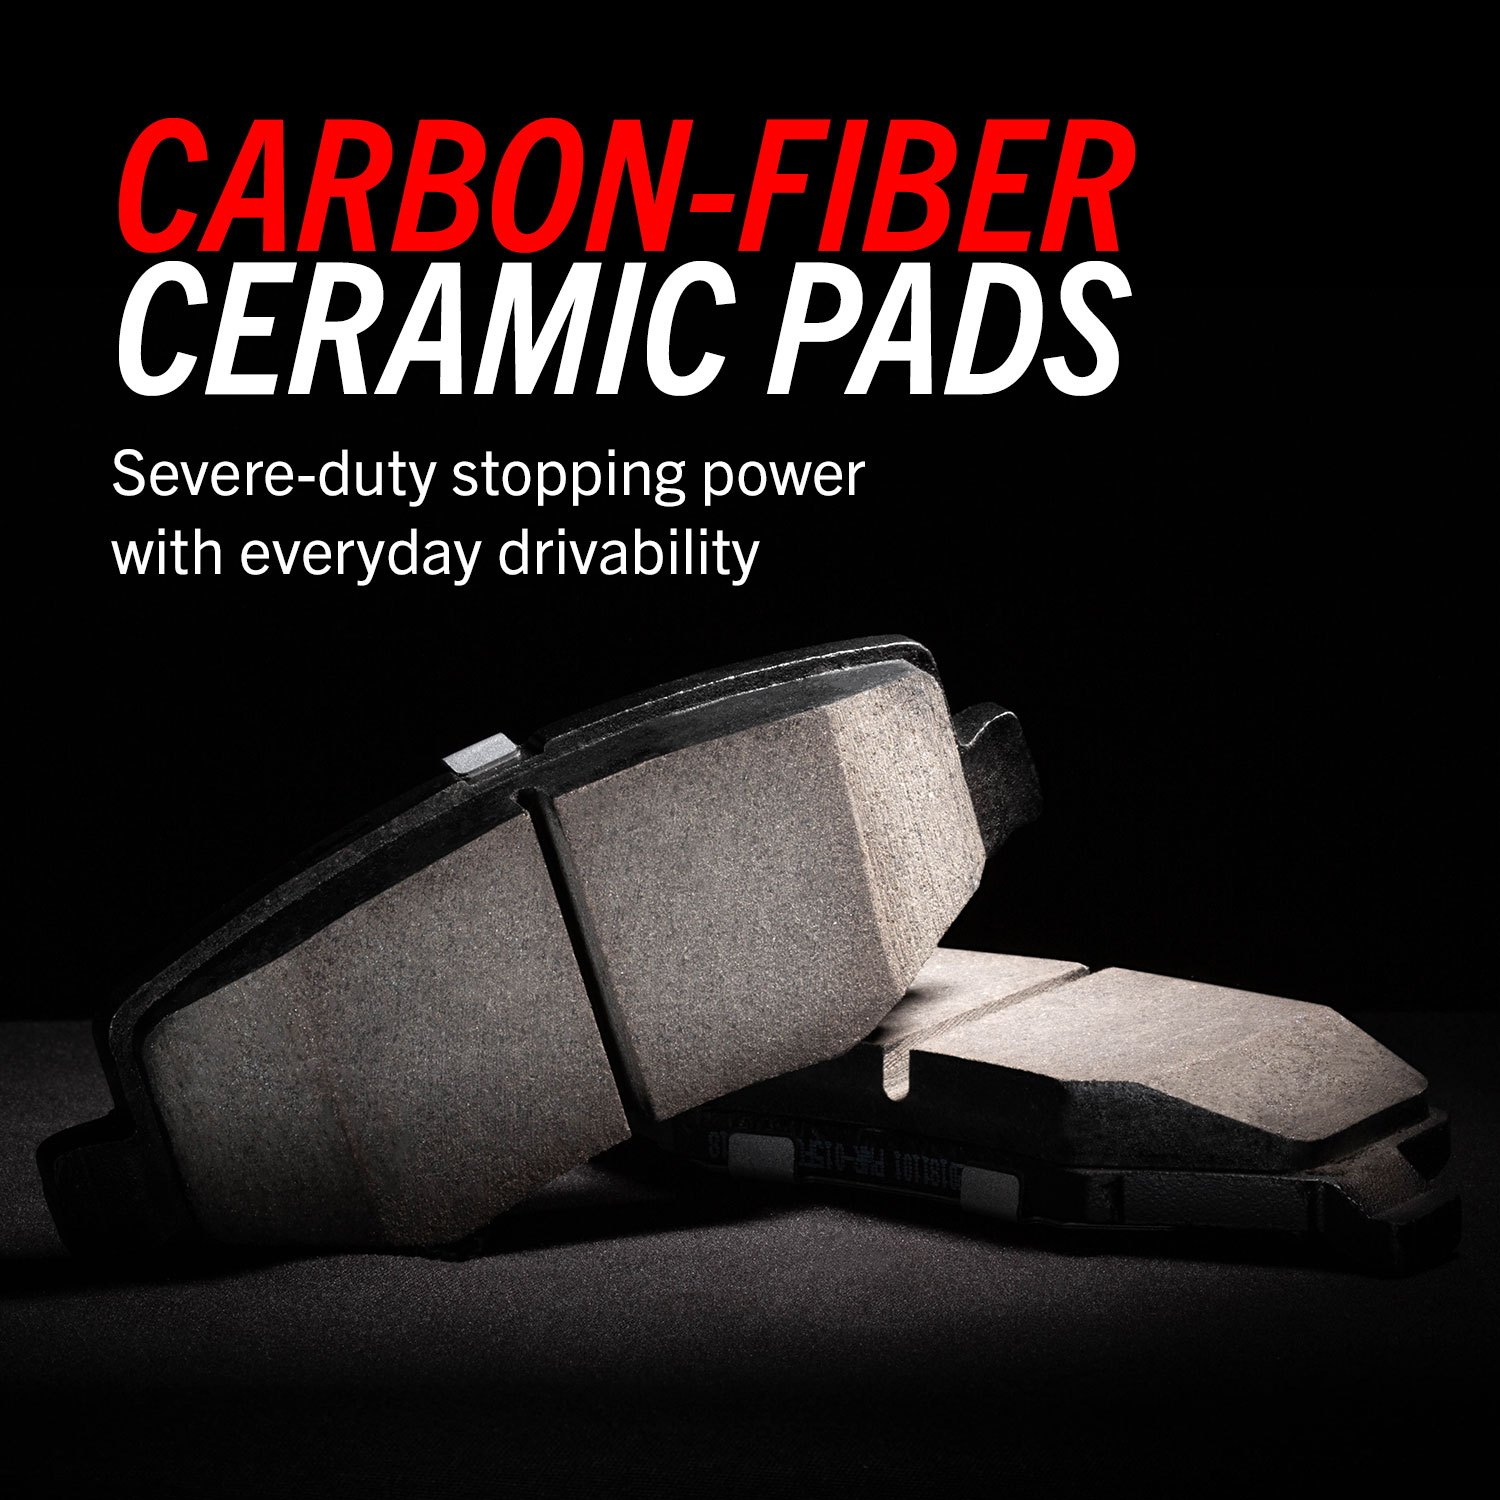 Carbon Fiber Ceramic Pads